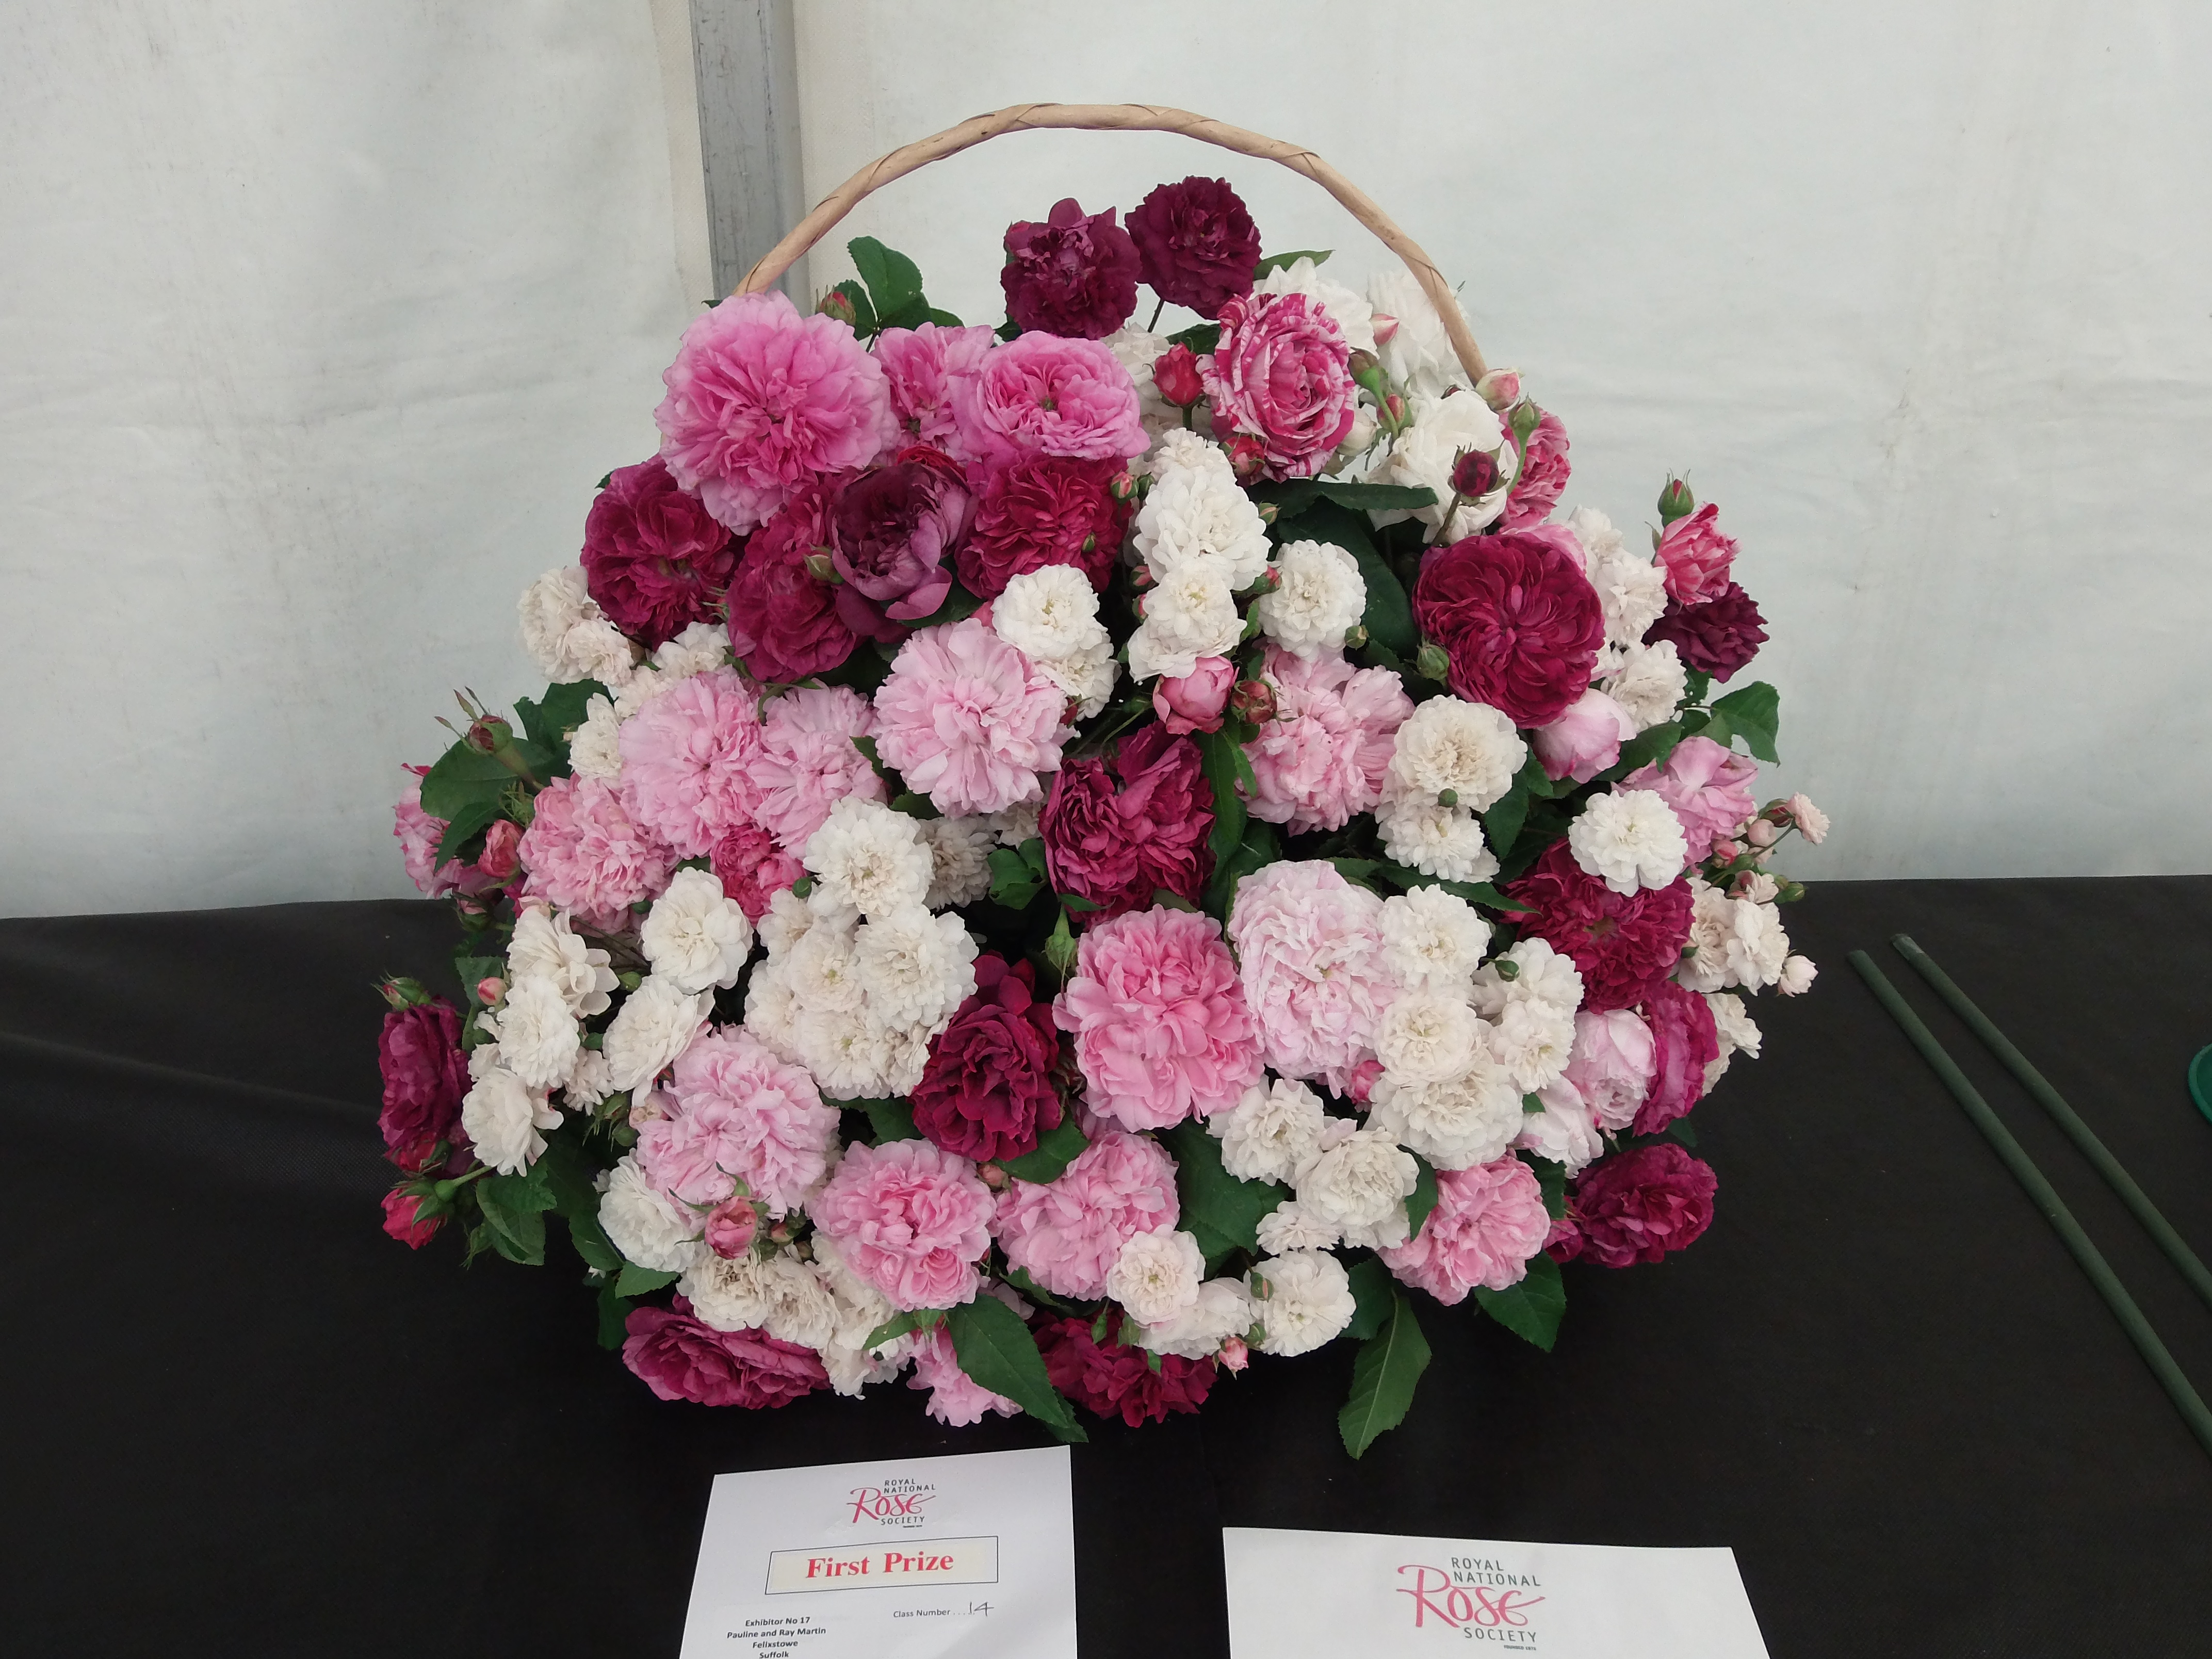 St_Albans_Show_2013/Pauline_andRay_Old_Garden_Basket_St_Albans.JPG